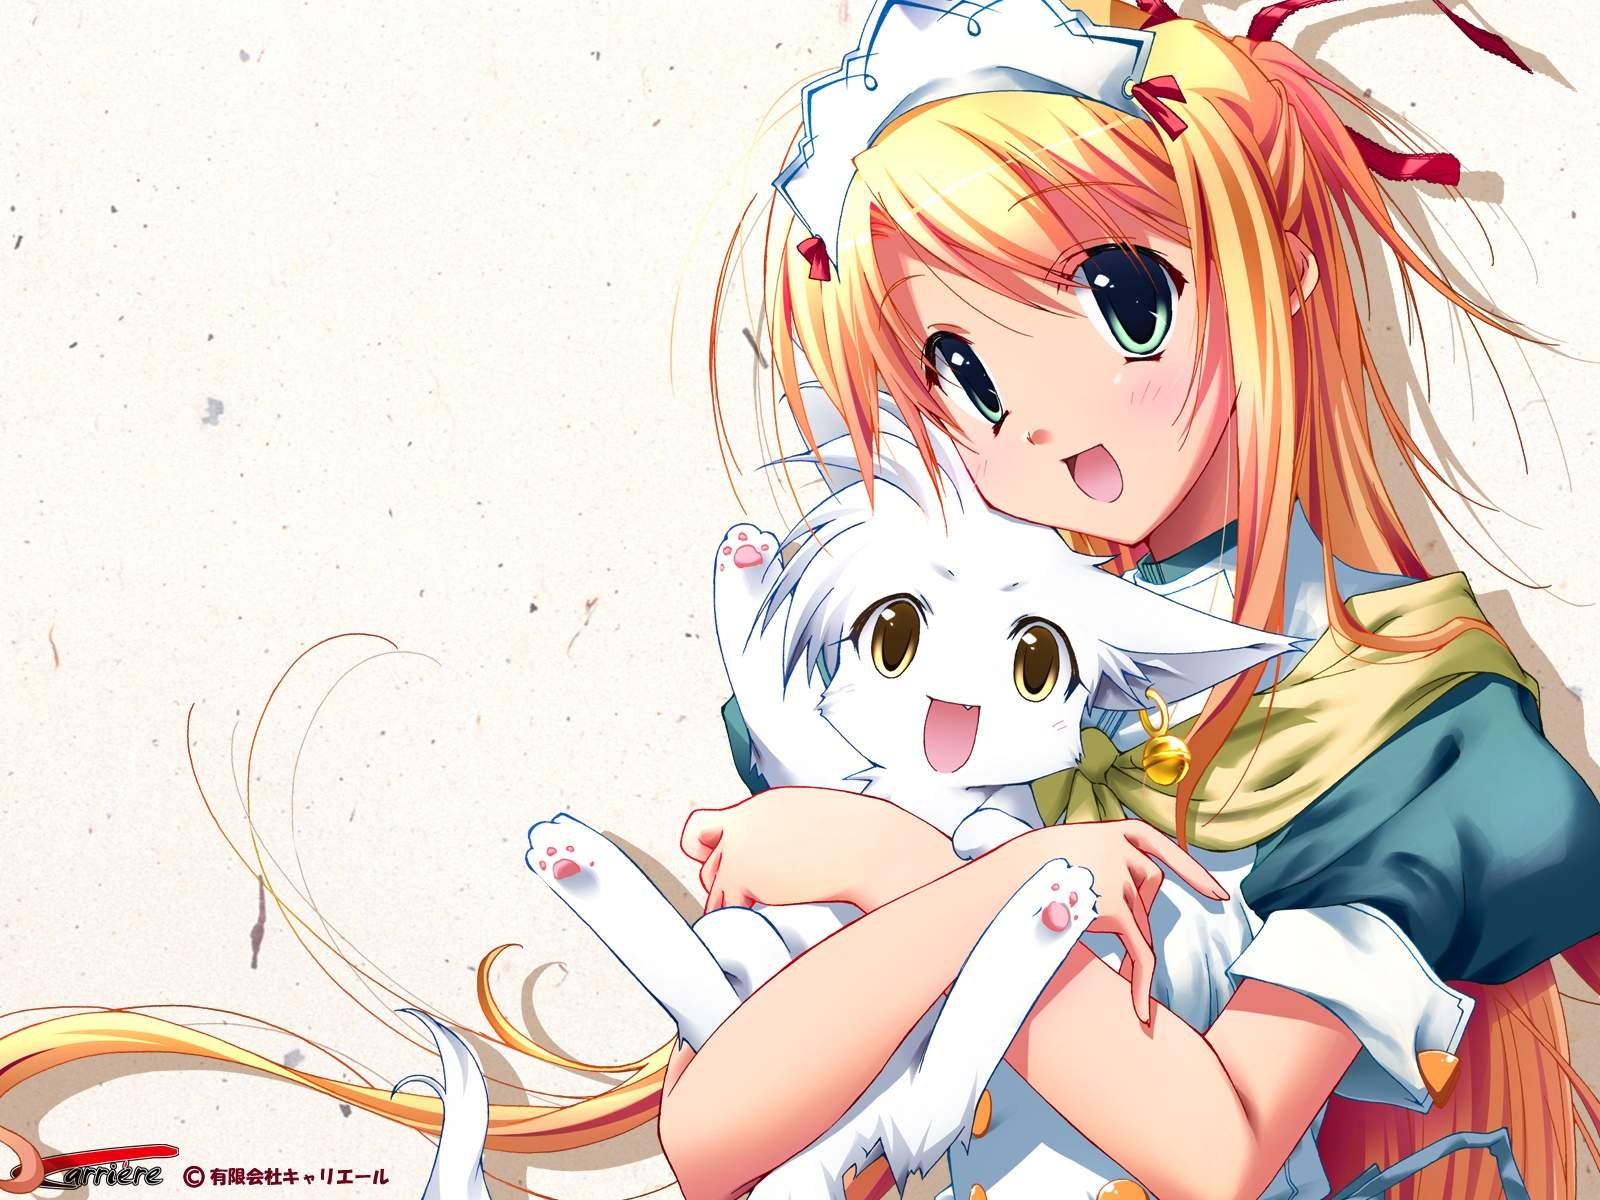 Cute Anime Wallpaper Apk